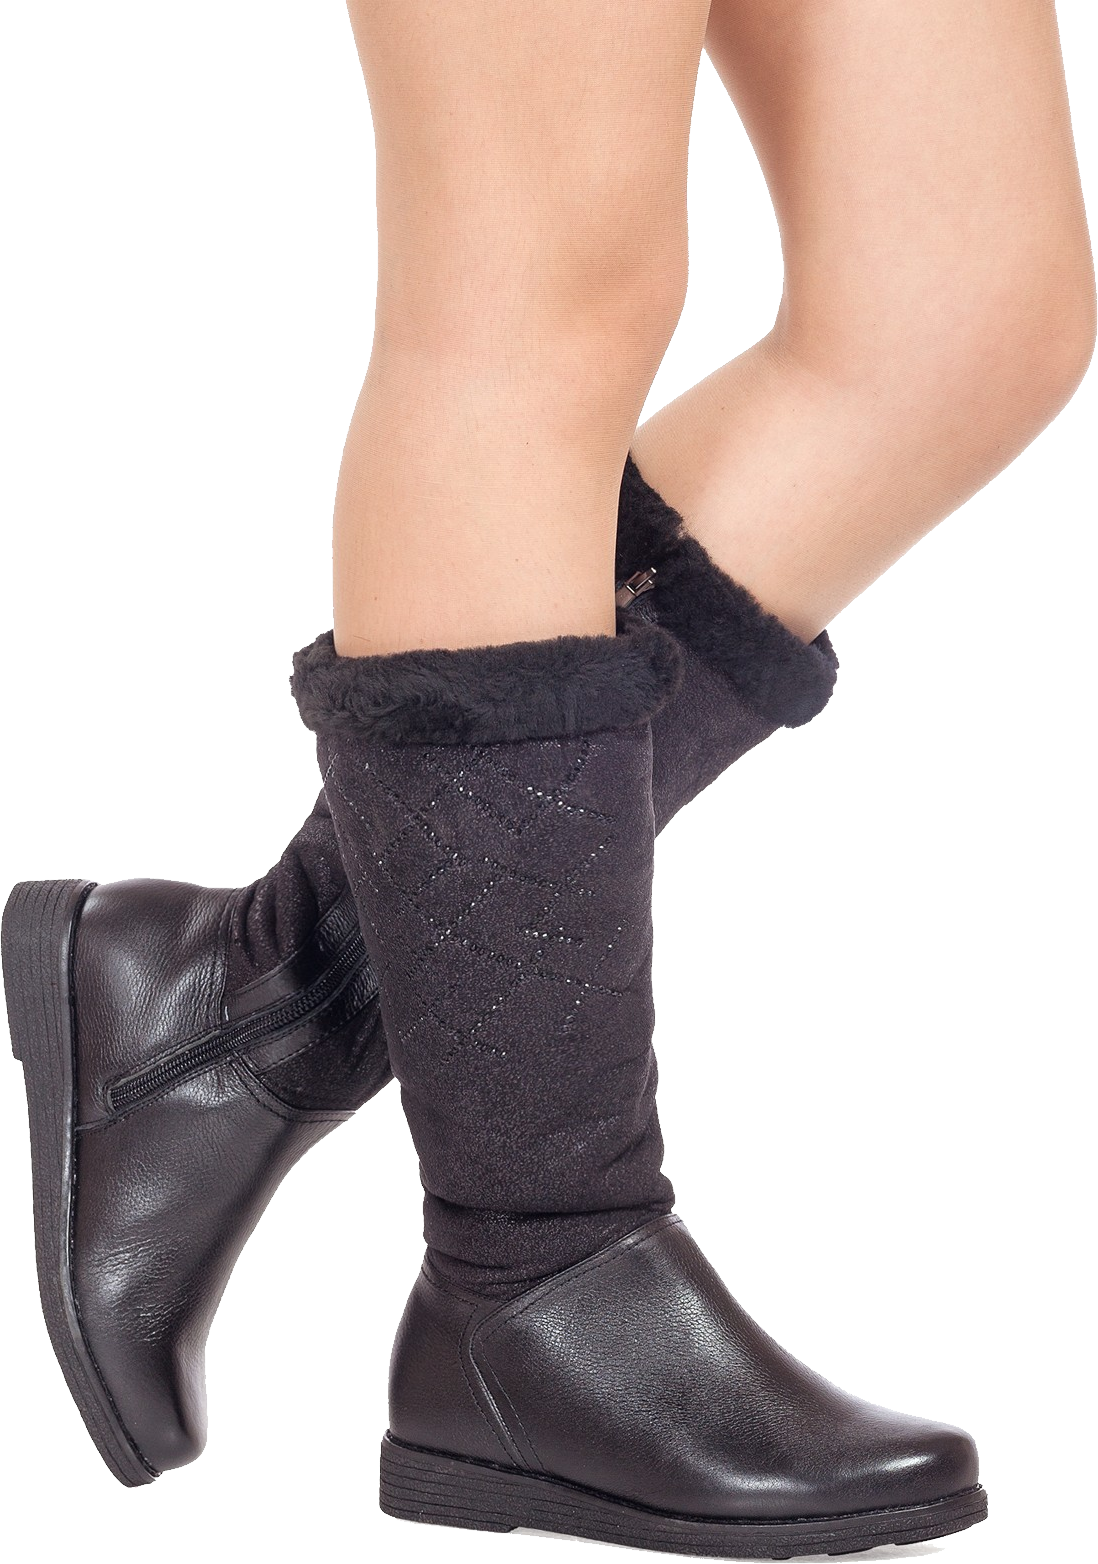 Png legs high heels. Boots on image